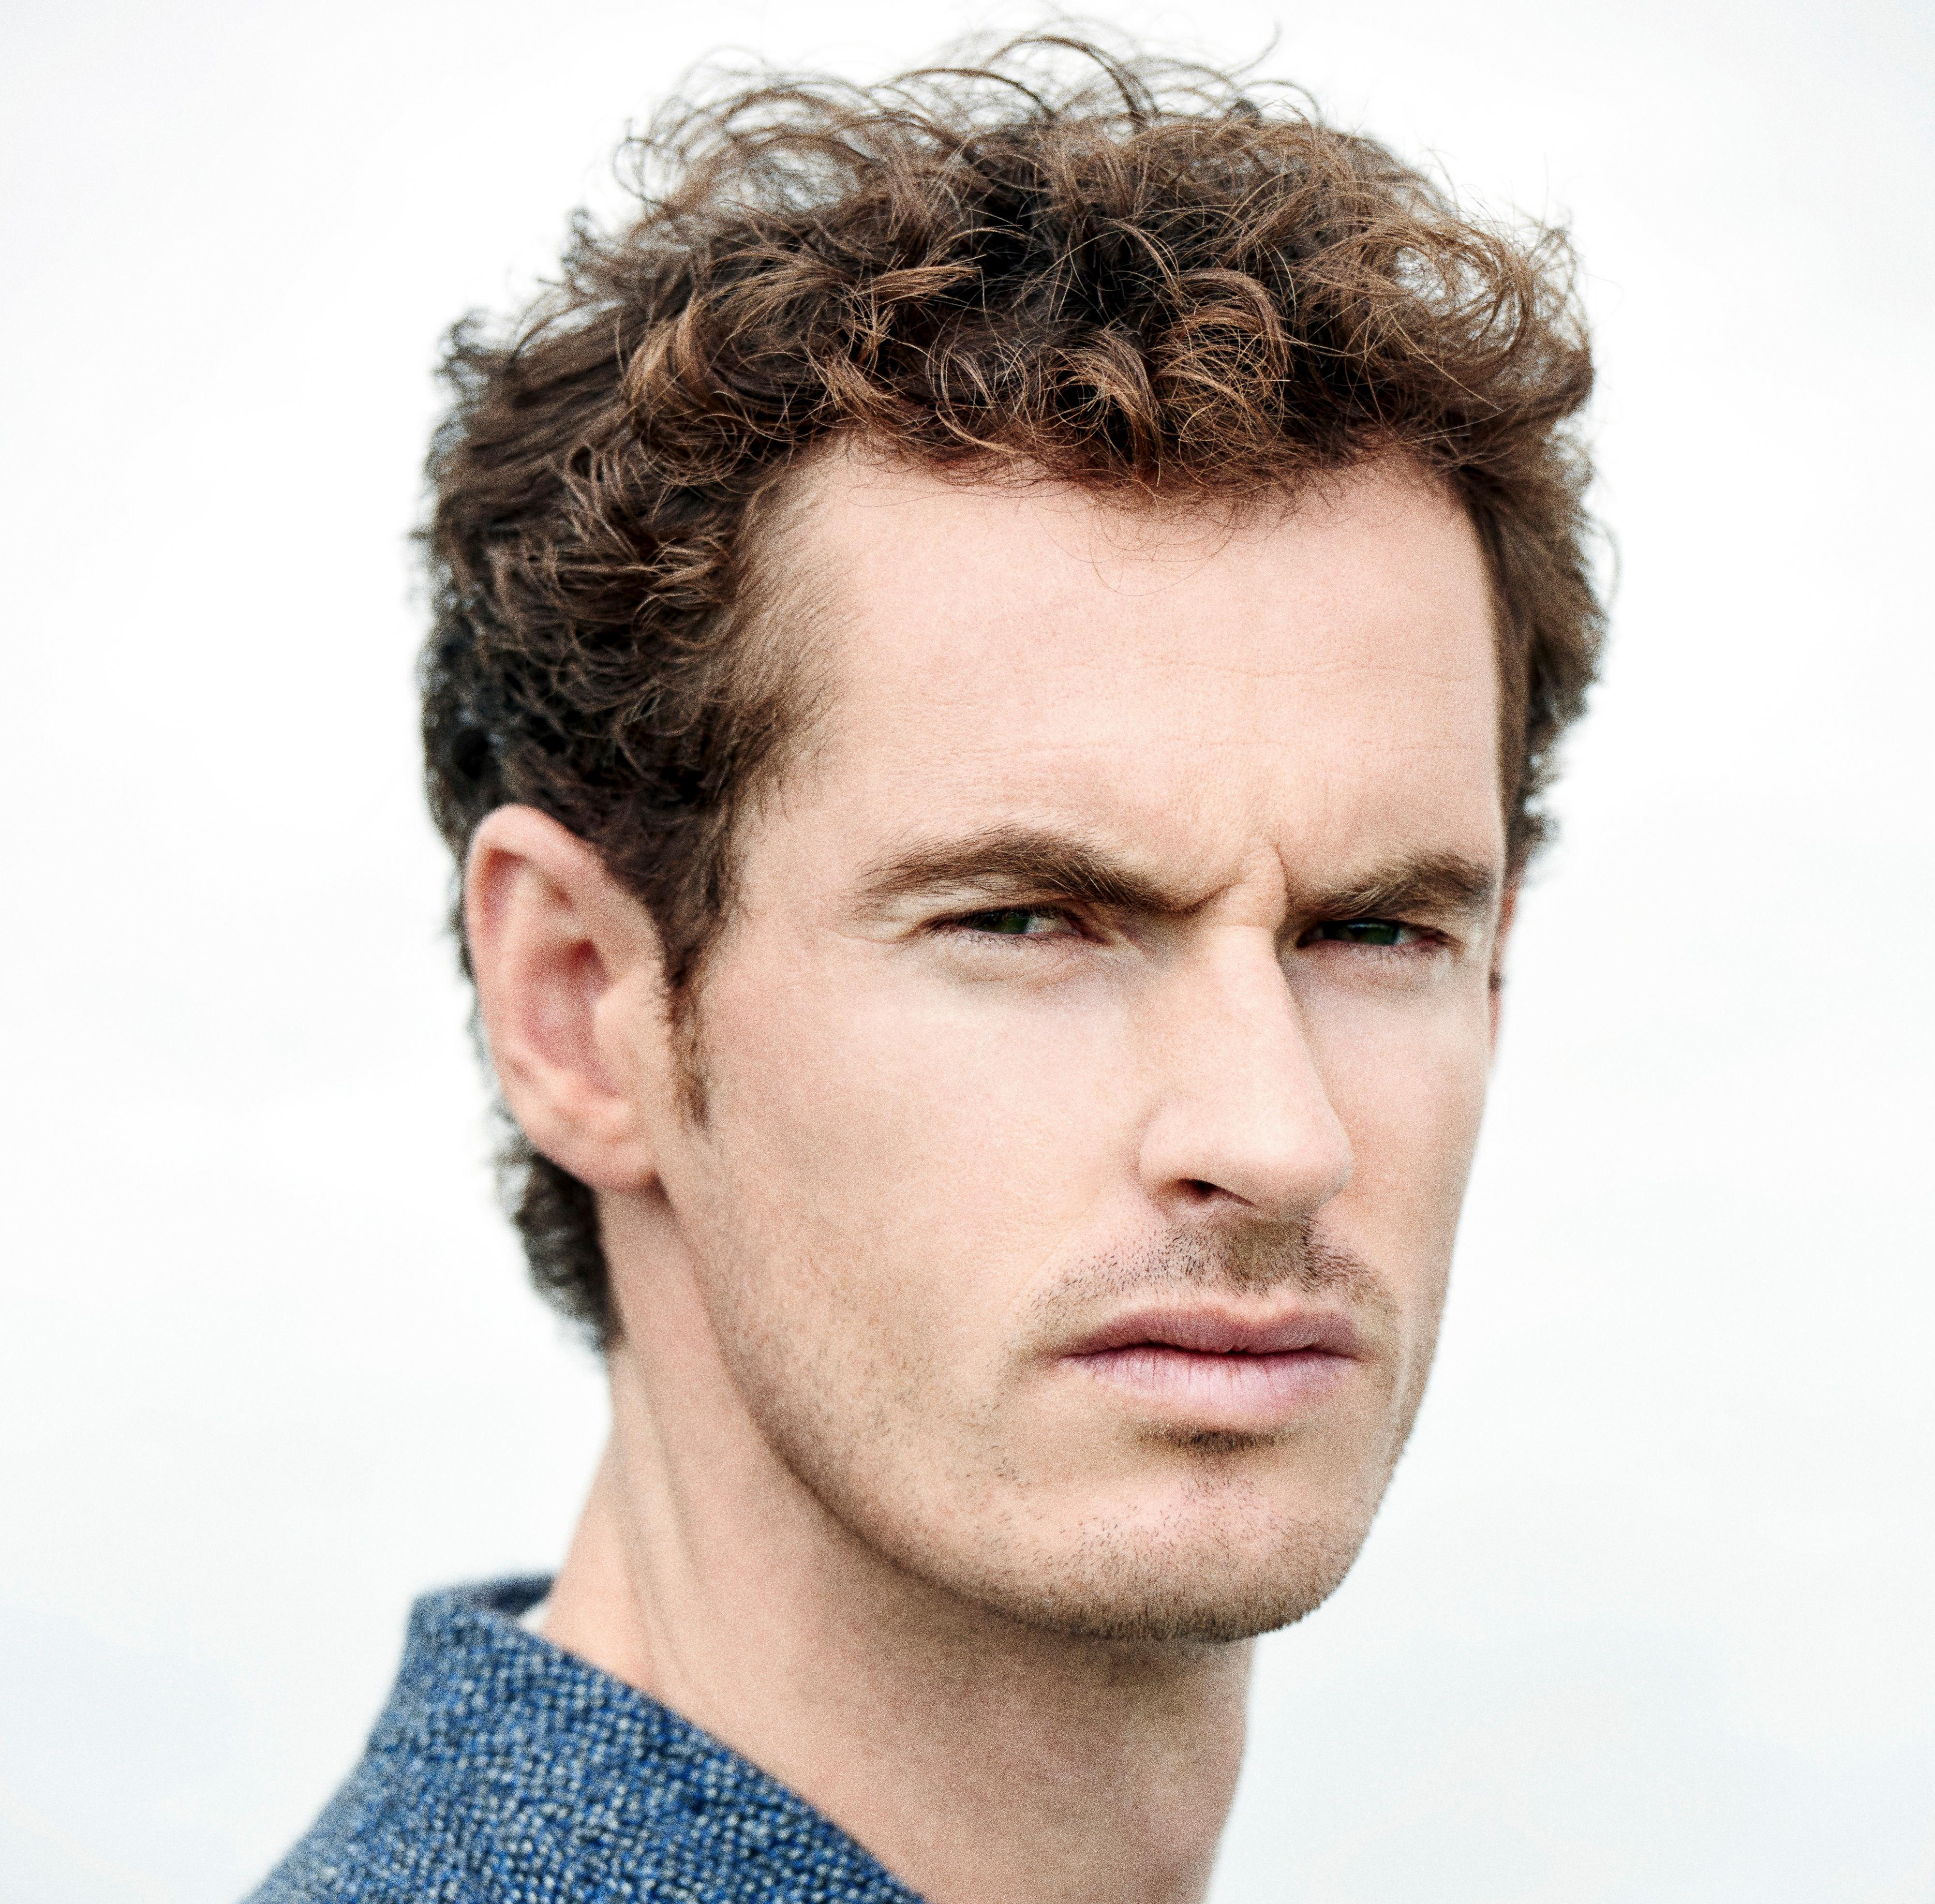 Andy Murray: 'I went from world No 1 to not being able to walk'